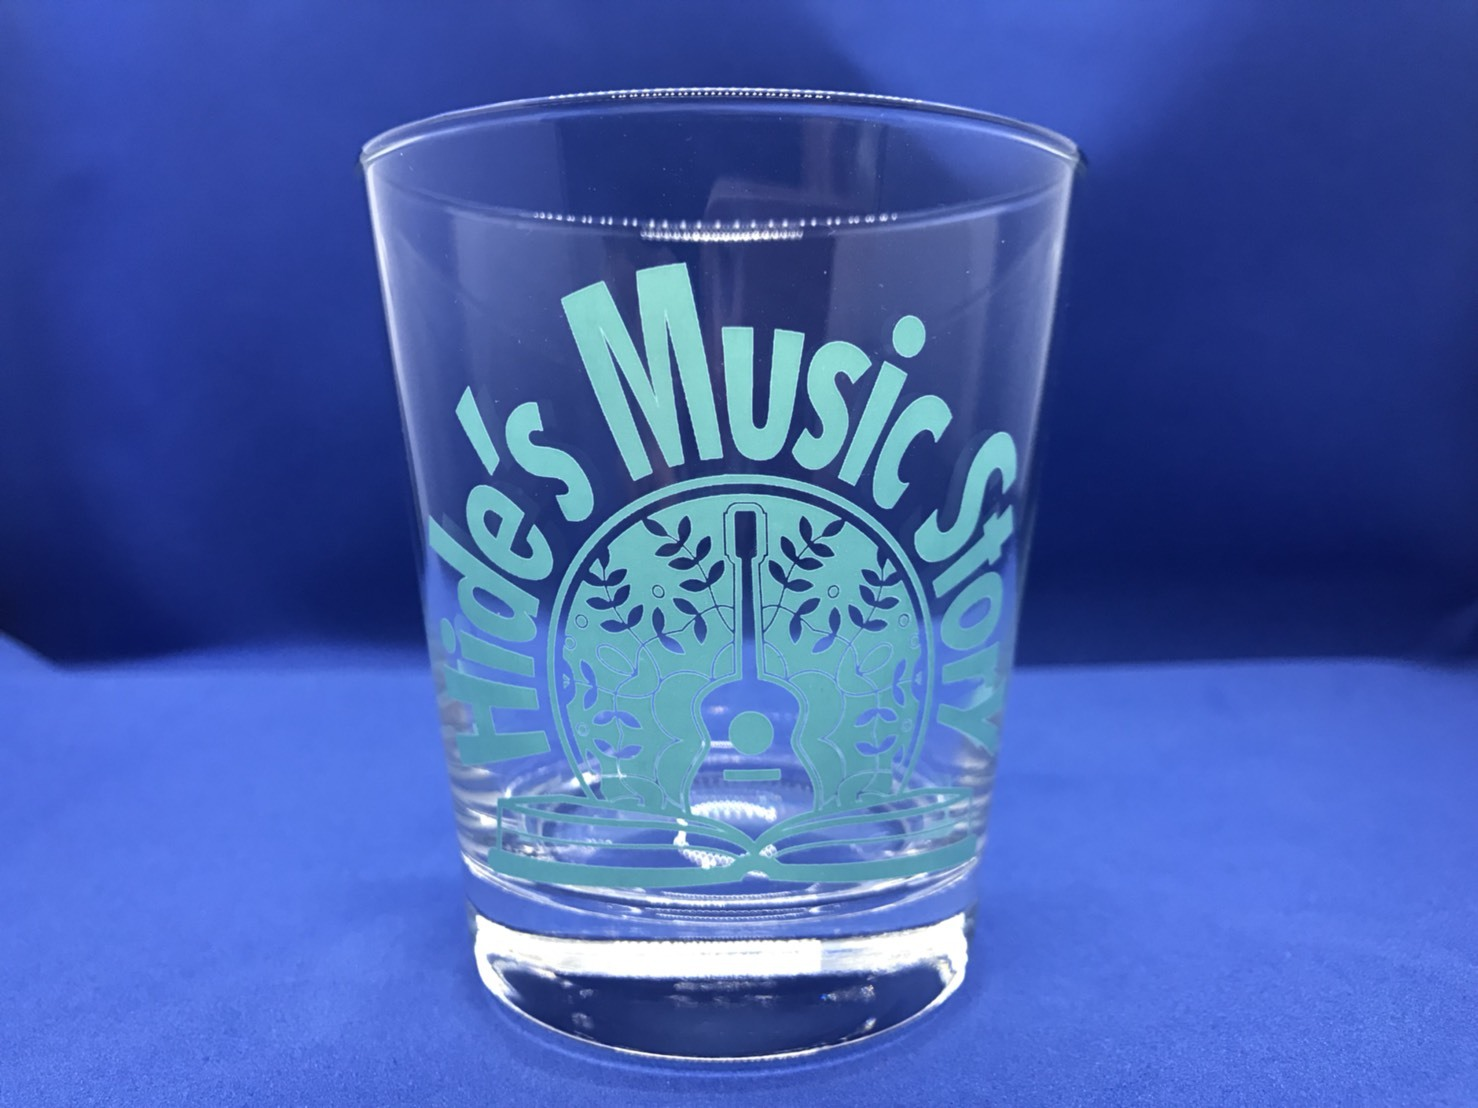 Hide's Music Story Original Glass (Turquoise Blue)